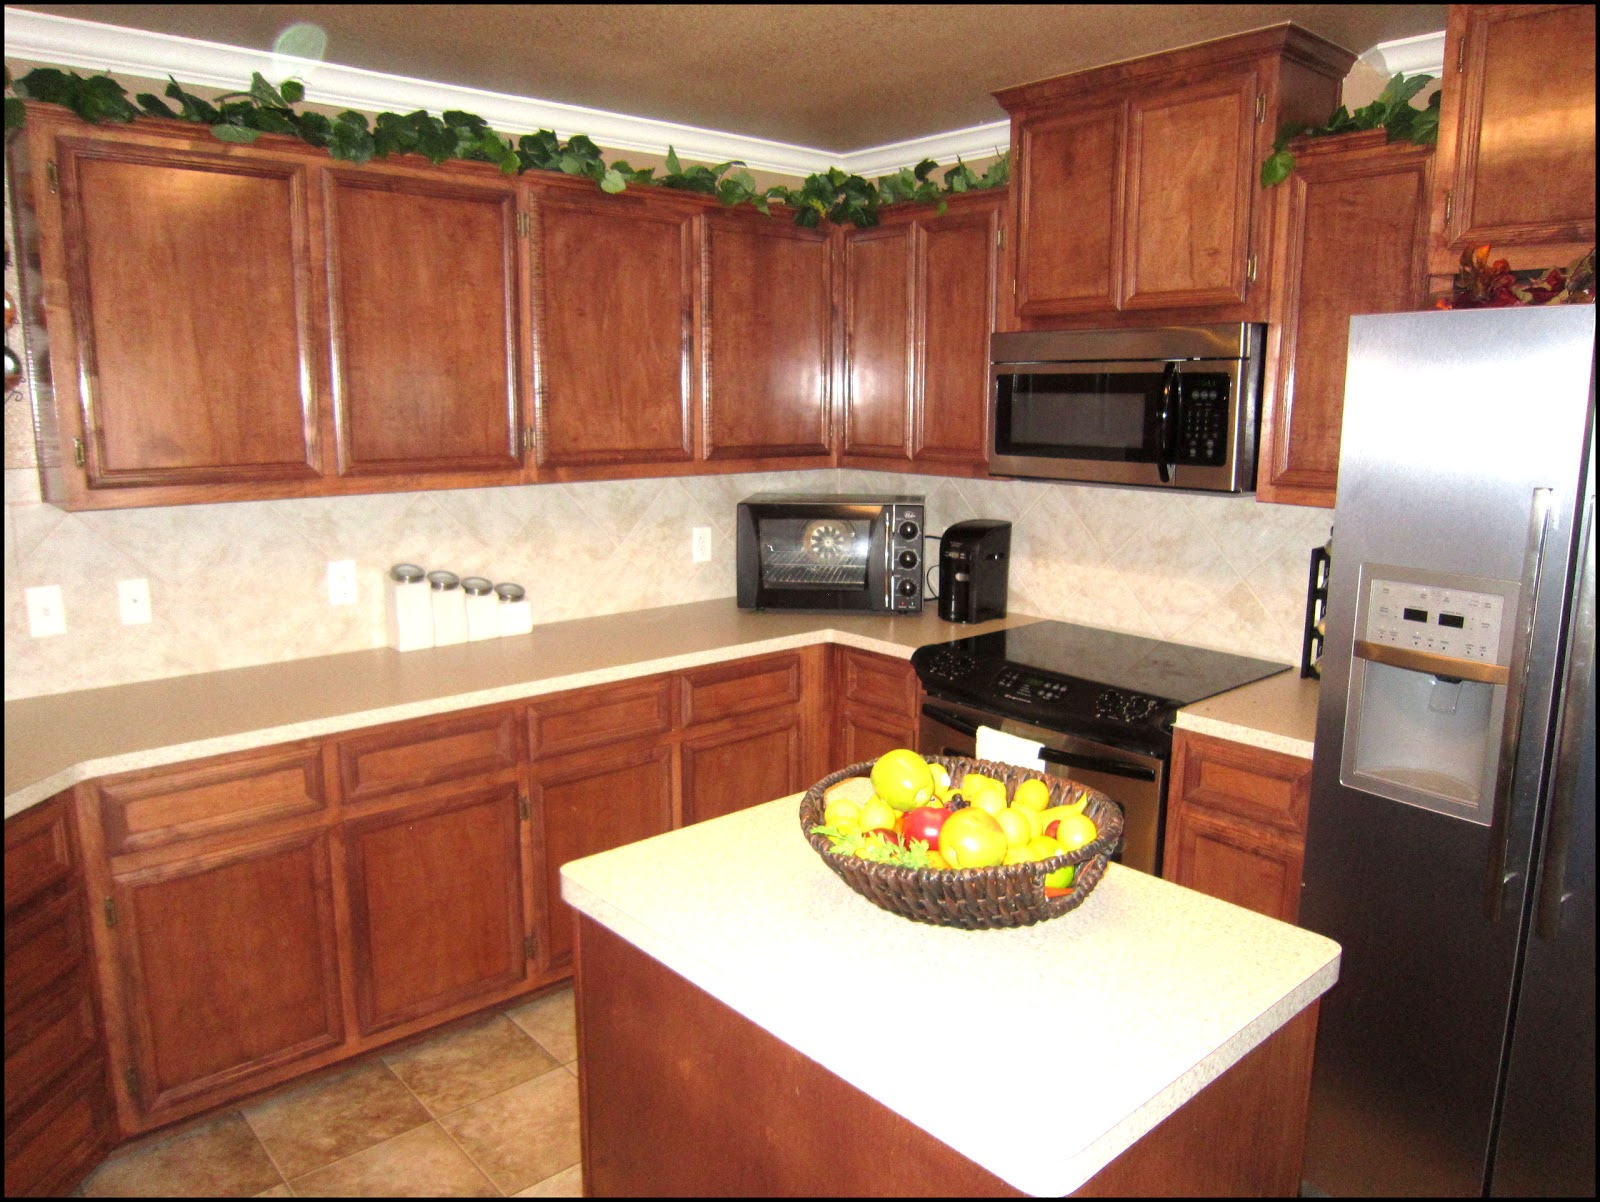 The excellent Before and after kitchen remodels dark cabinet image